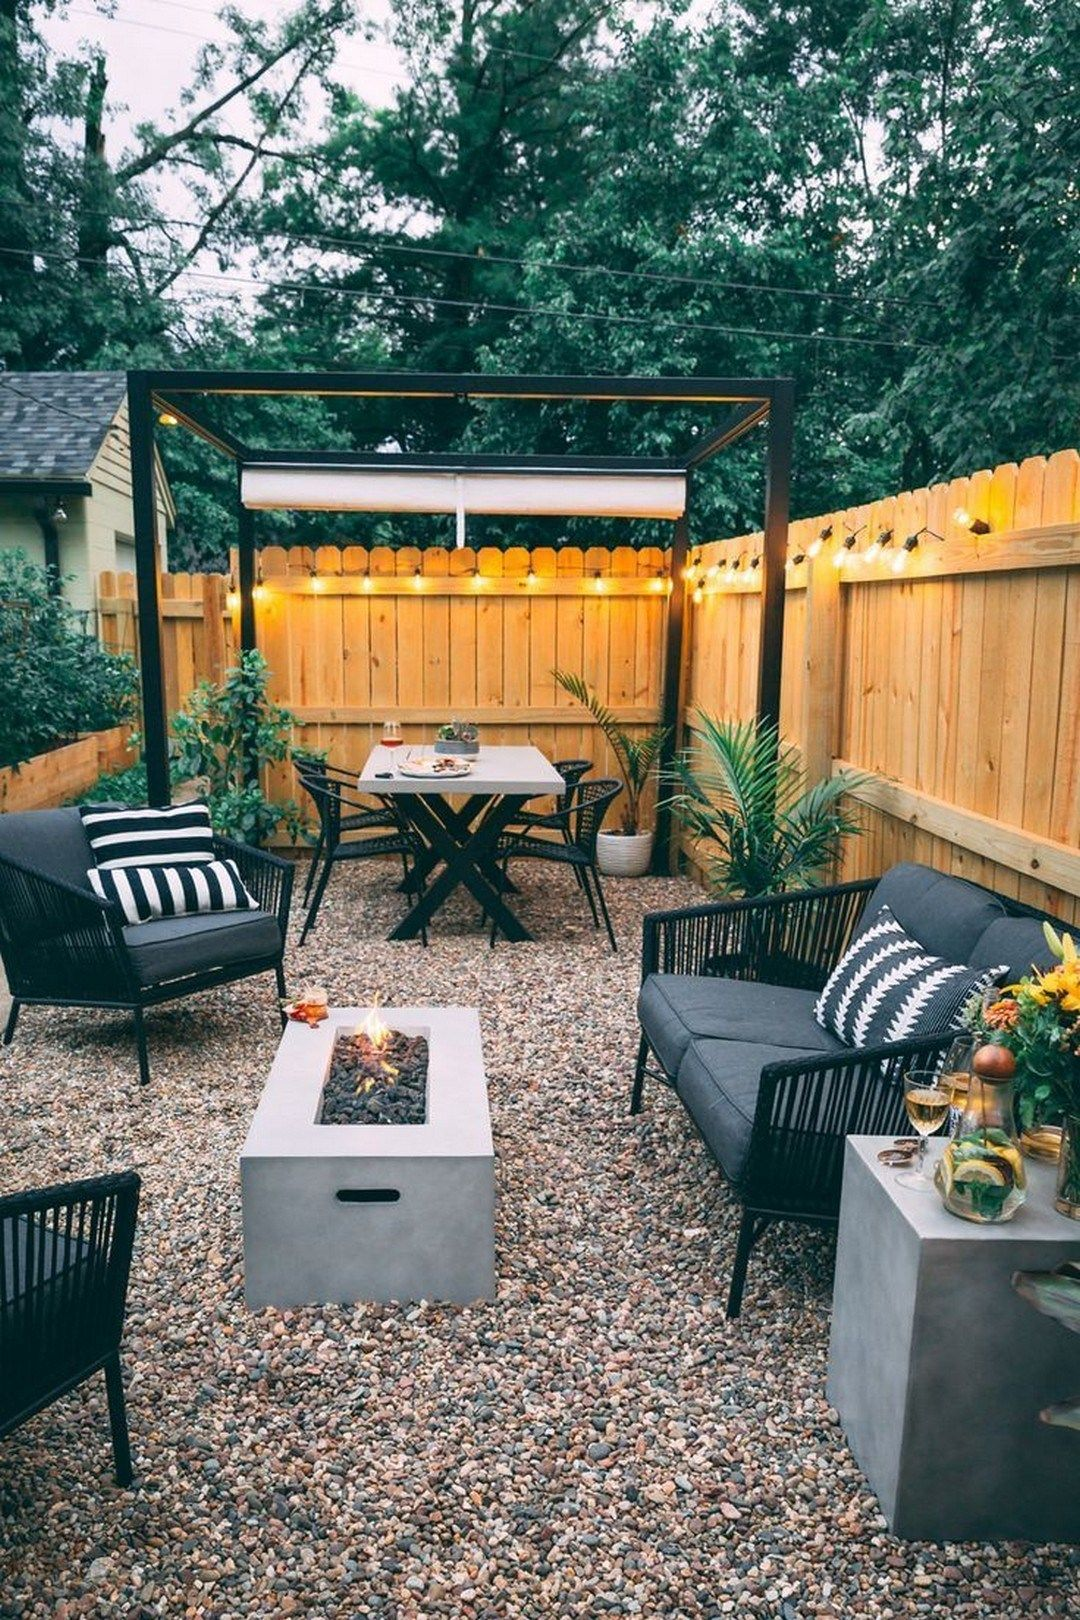 22 Awesome DIY Projects to Make Backyard and Patio More ...